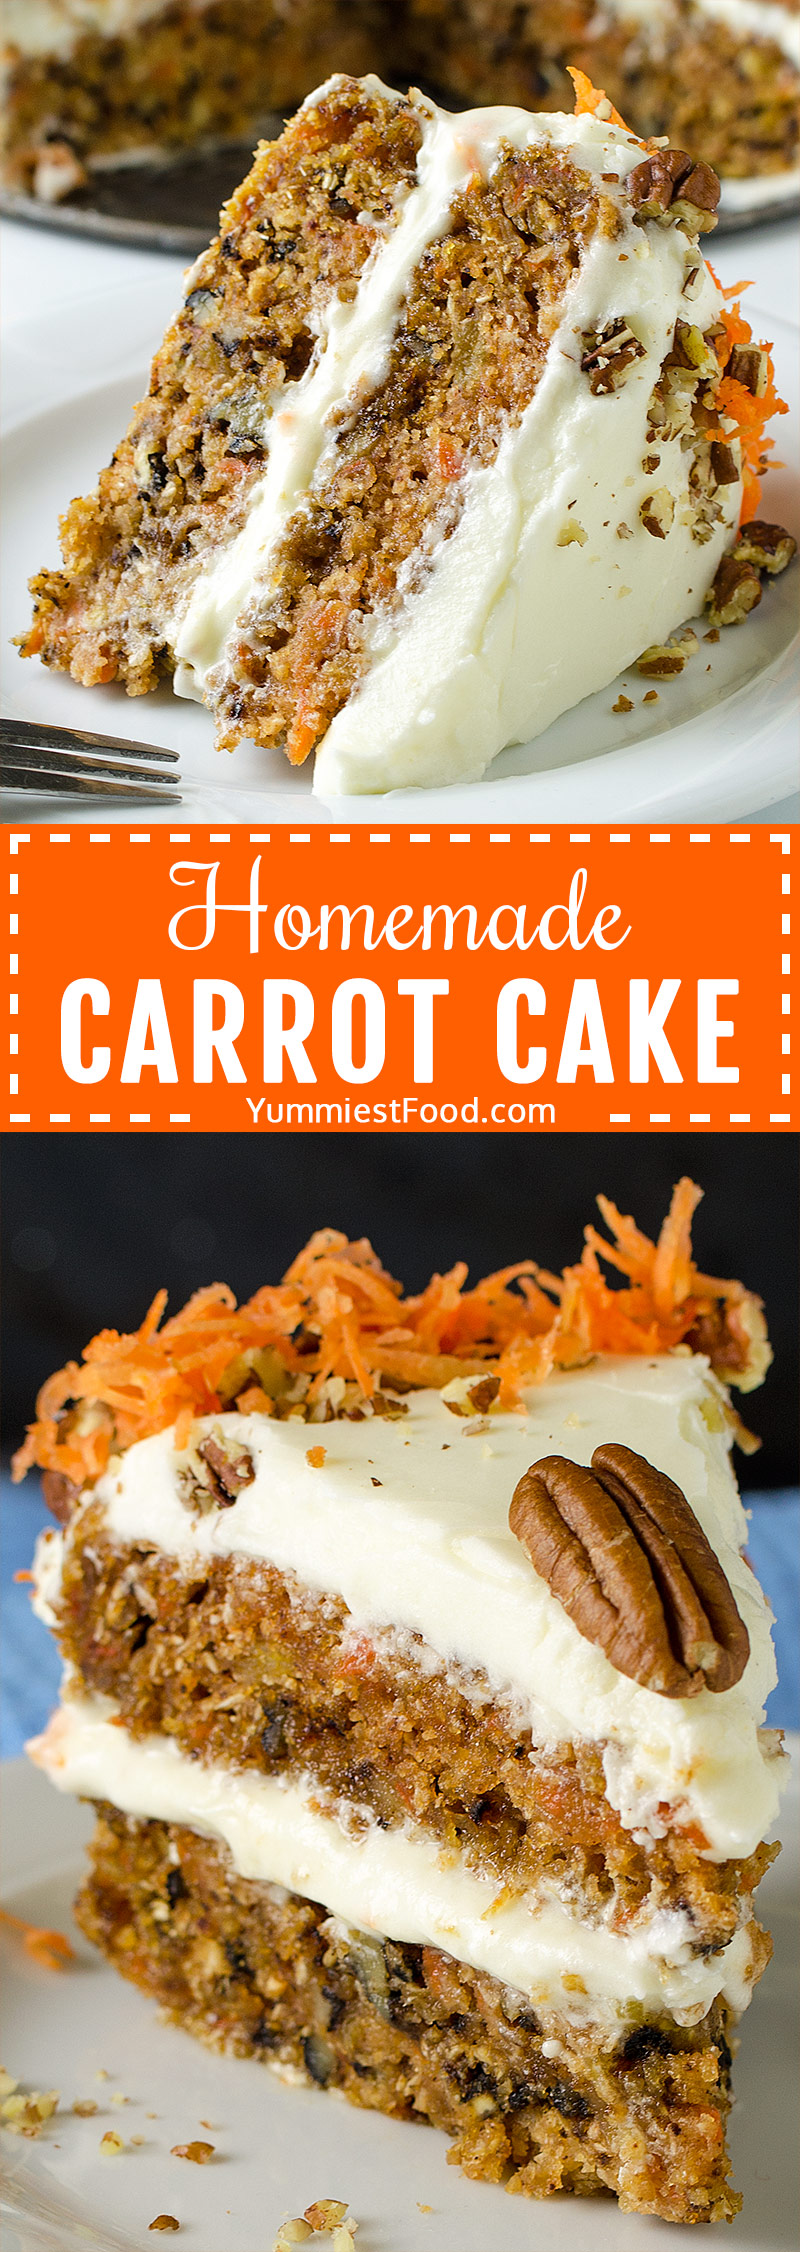 HOMEMADE CARROT CAKE – This easy Carrot cake recipe is rich, moist and delicious